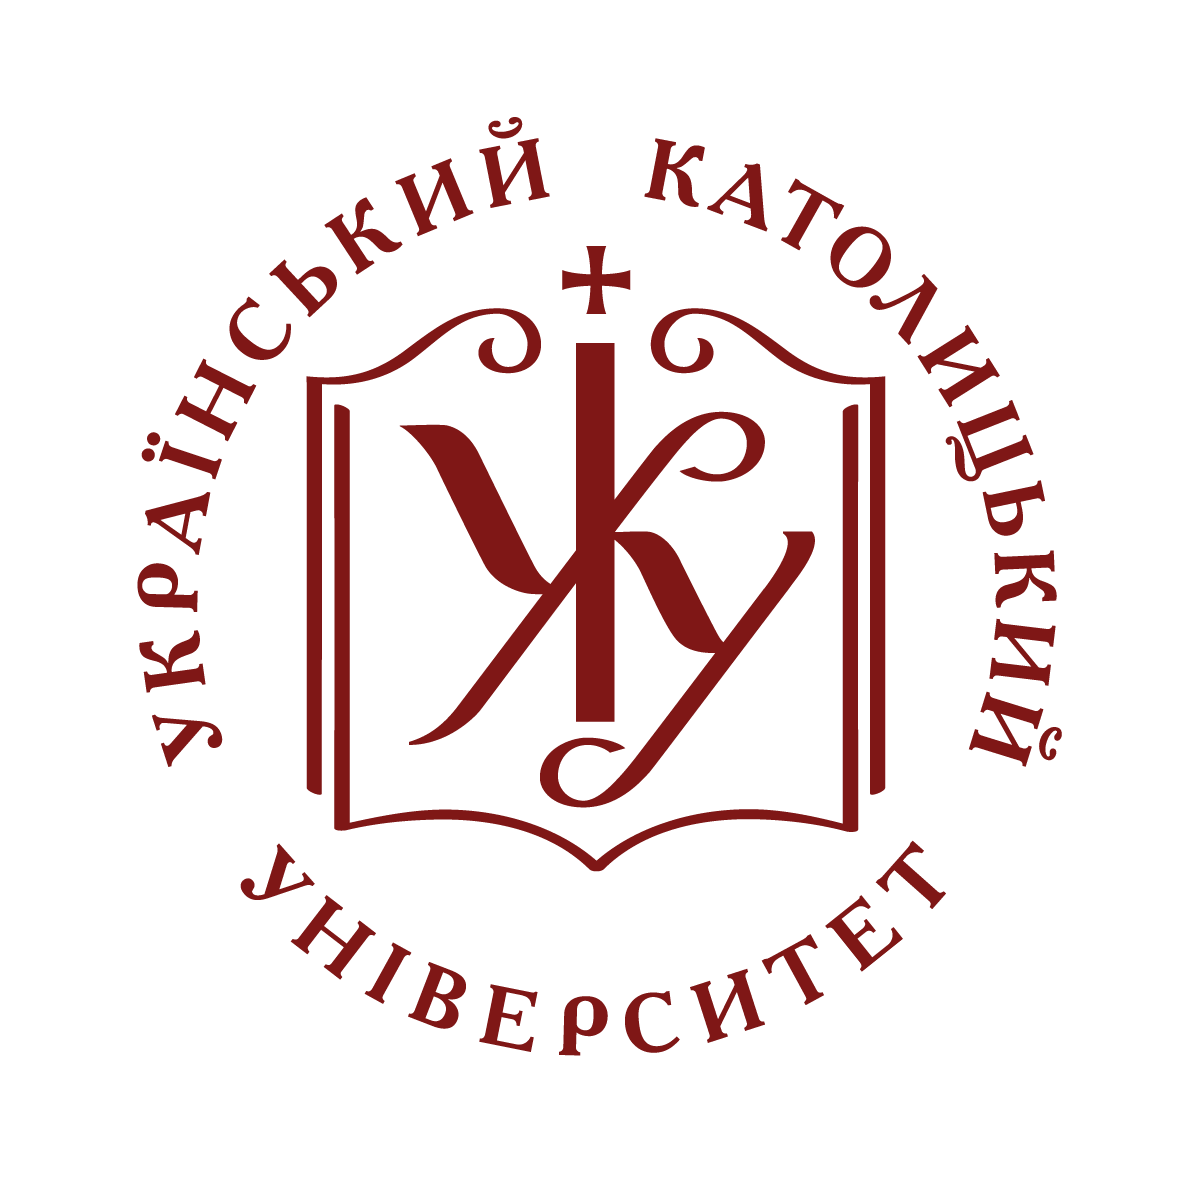 Université catholique ukrainienne